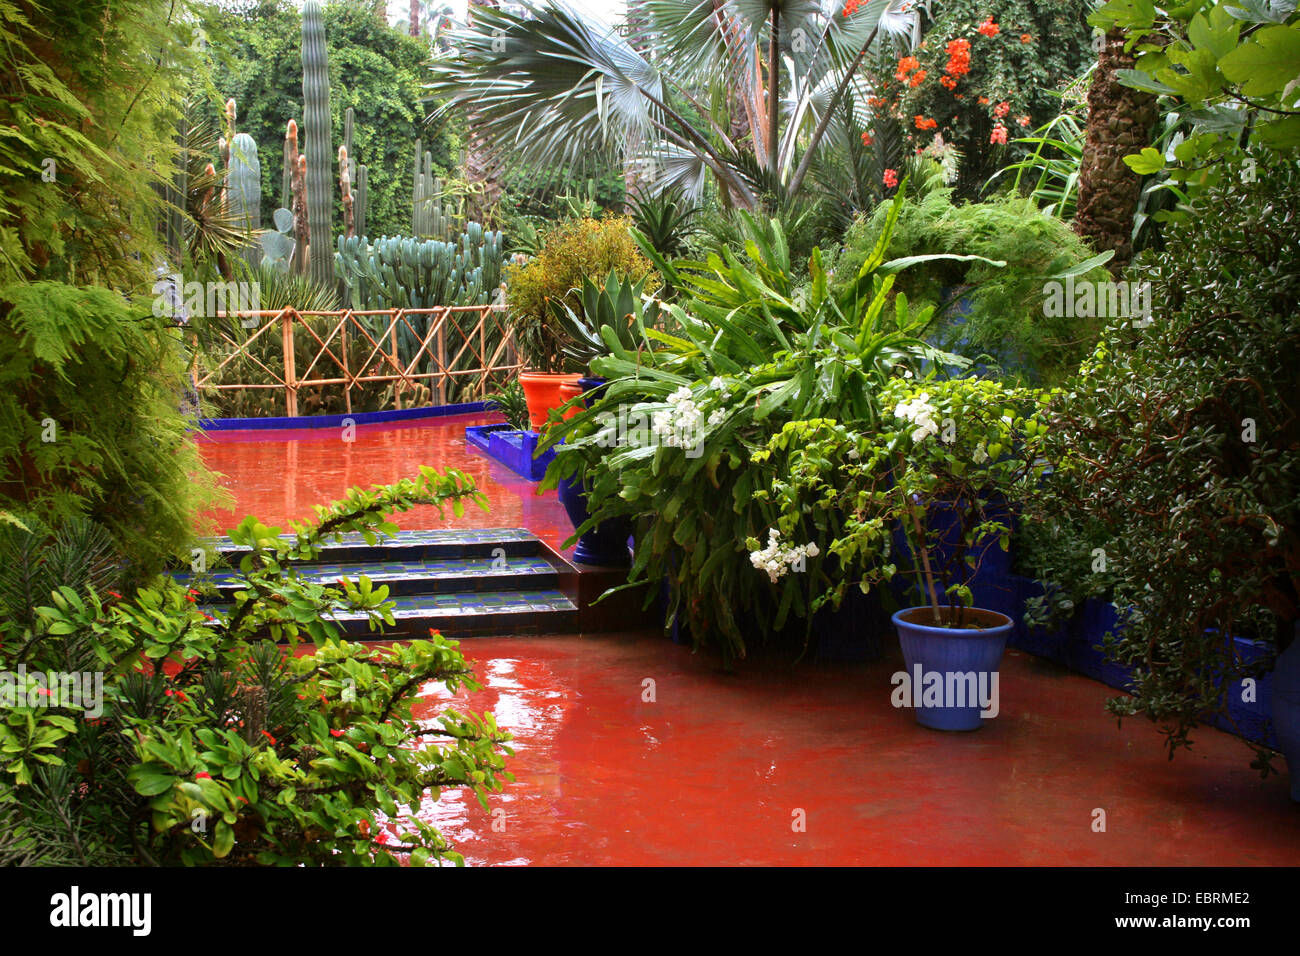 Jardin majorelle botanical garden by yves saint laurent morocco stock photo royalty free - Jardin majorelle yves saint laurent ...